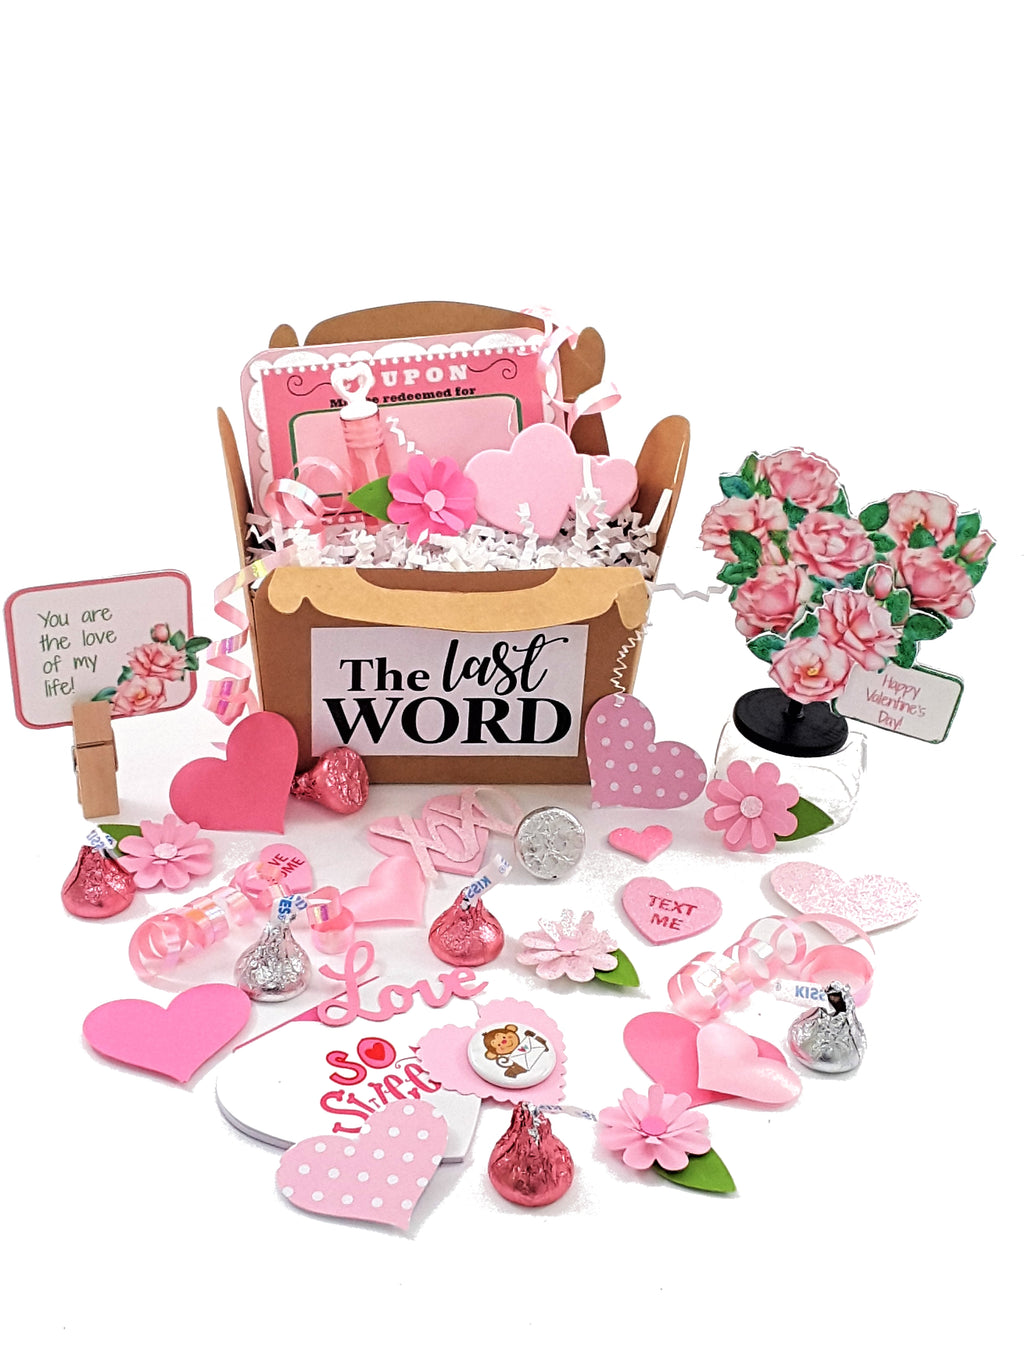 Pink Rose Heart Valentine's Day Stand Up Greeting Card - with goodies! - The Last Word Bish